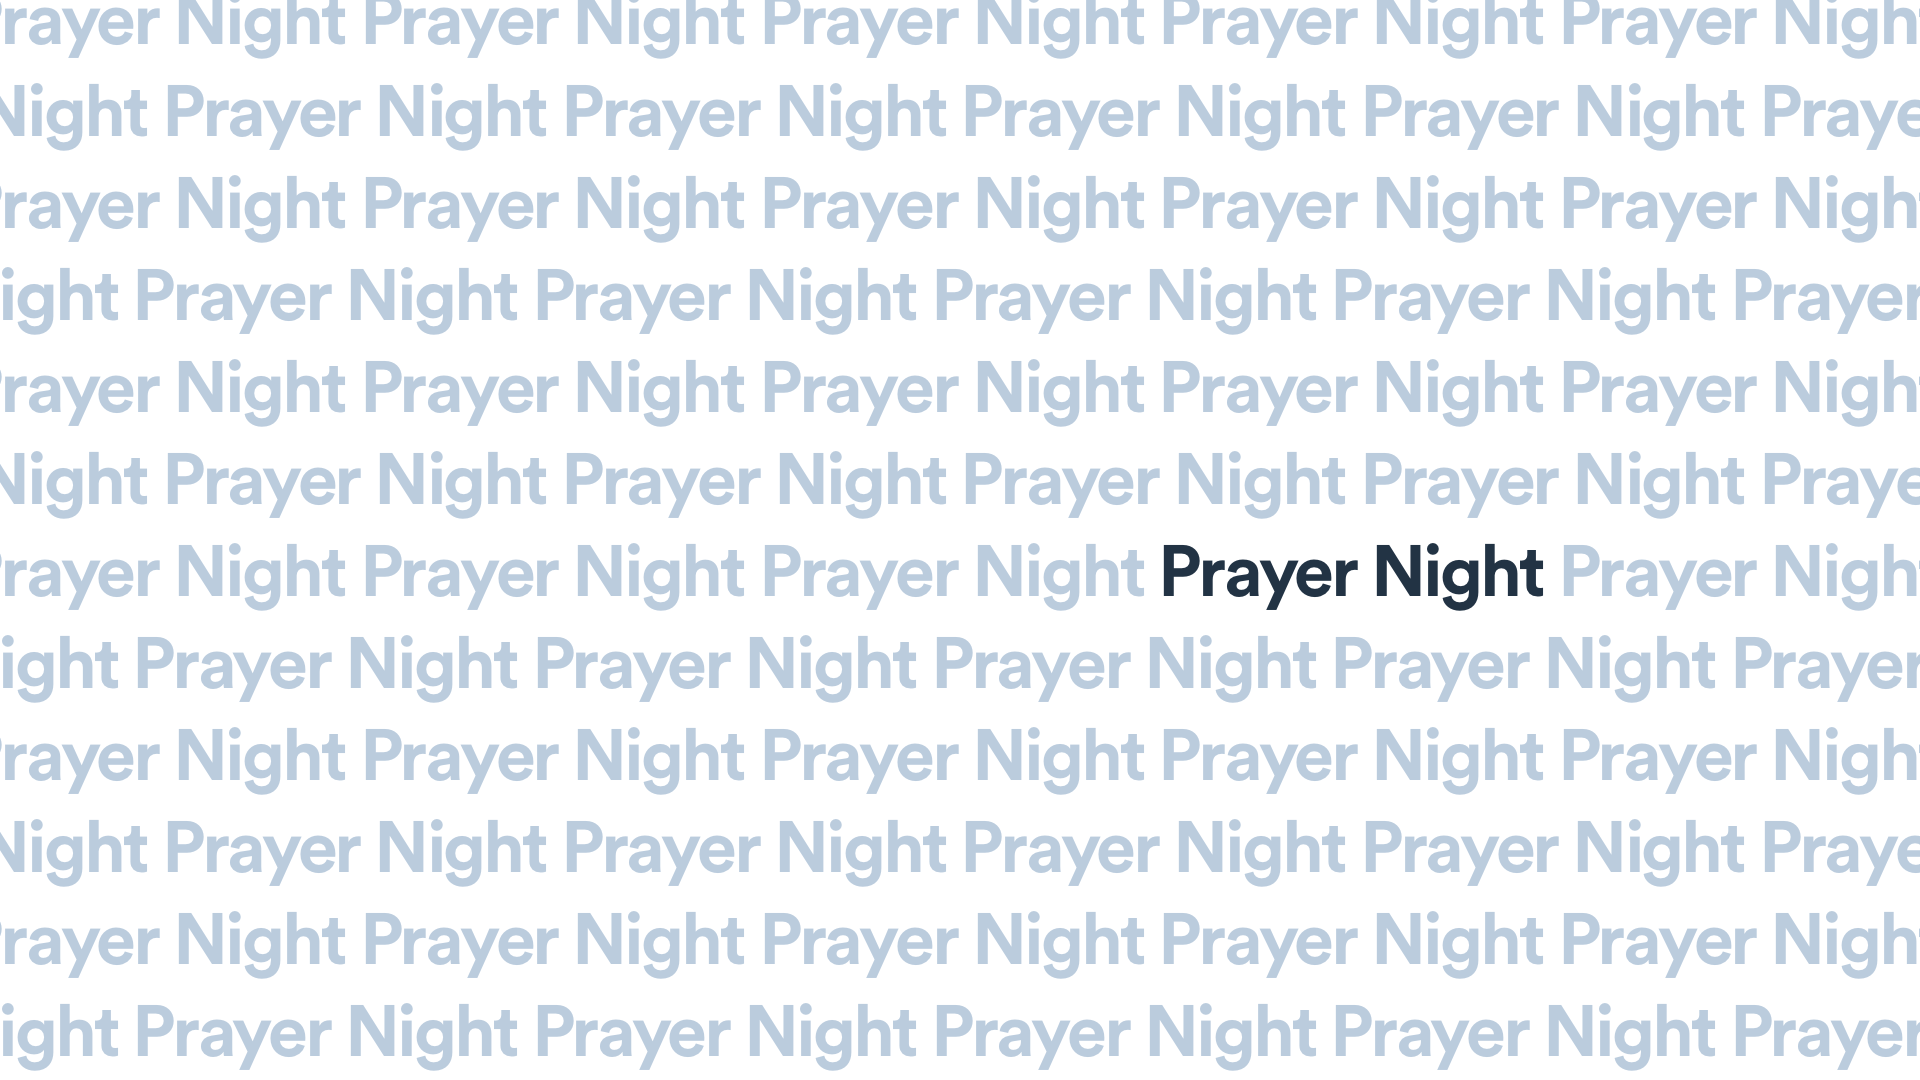 19-09-08-Prayer-Night.png